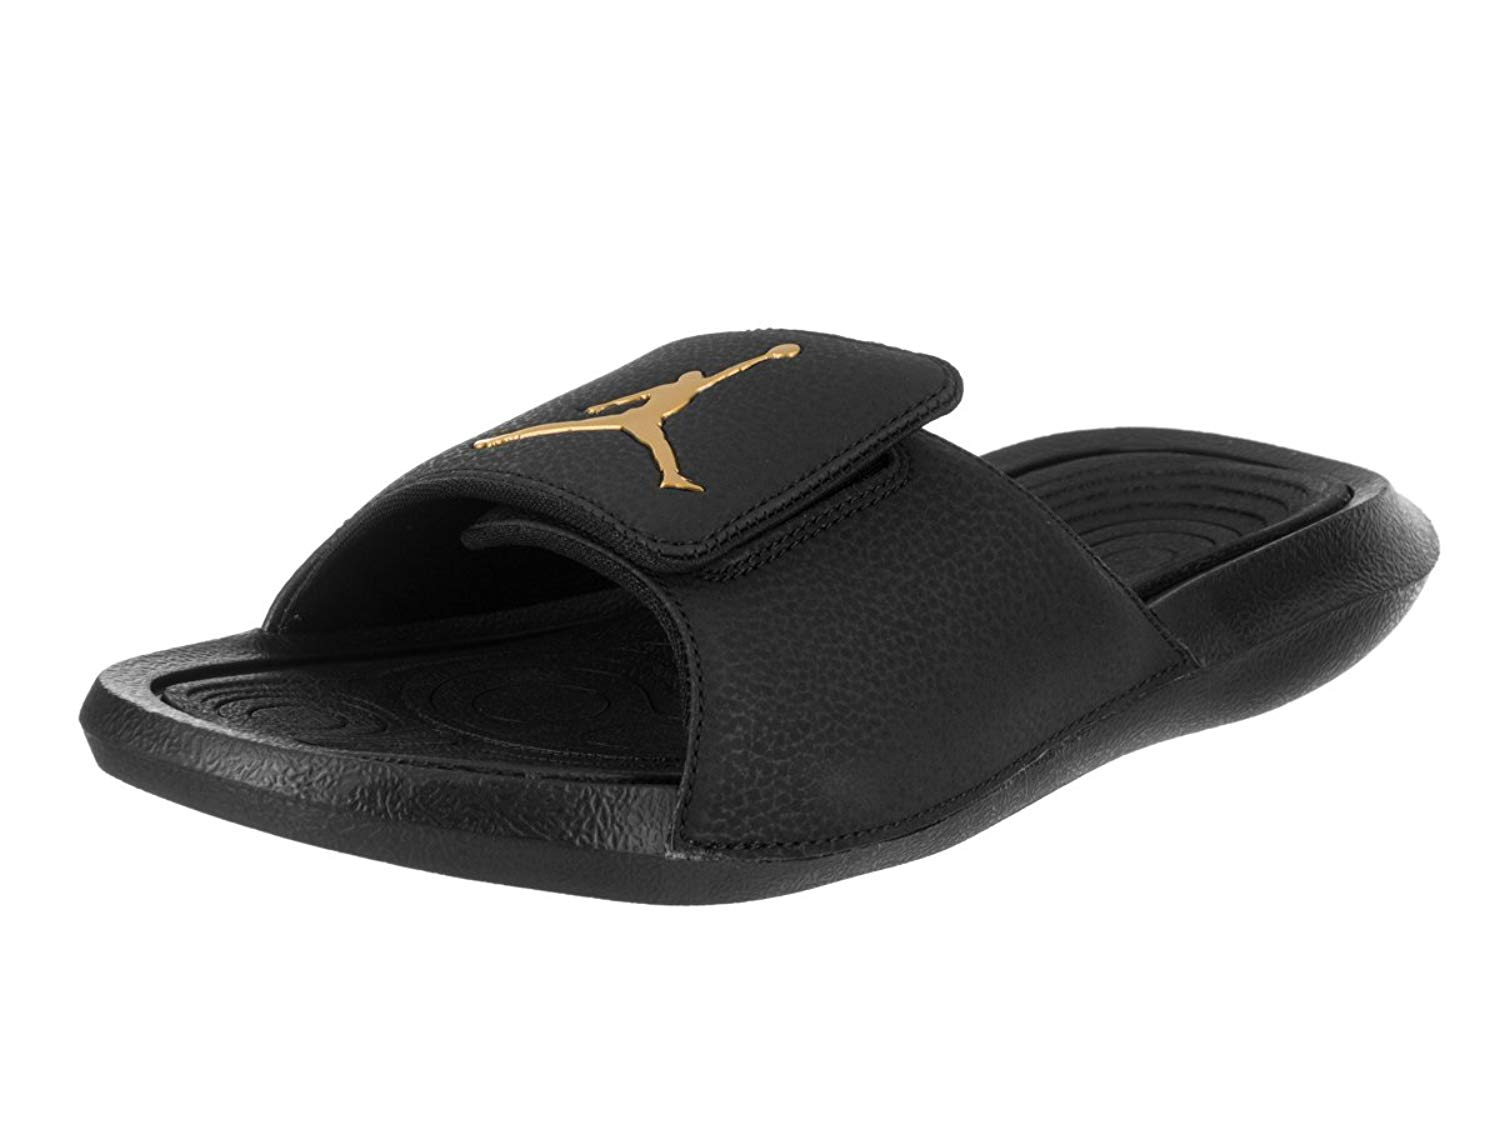 c2518aa0a105cd Get Quotations · Jordan Hydro 6 Men s Slides Black Metallic Gold 881473-033  (10 D(